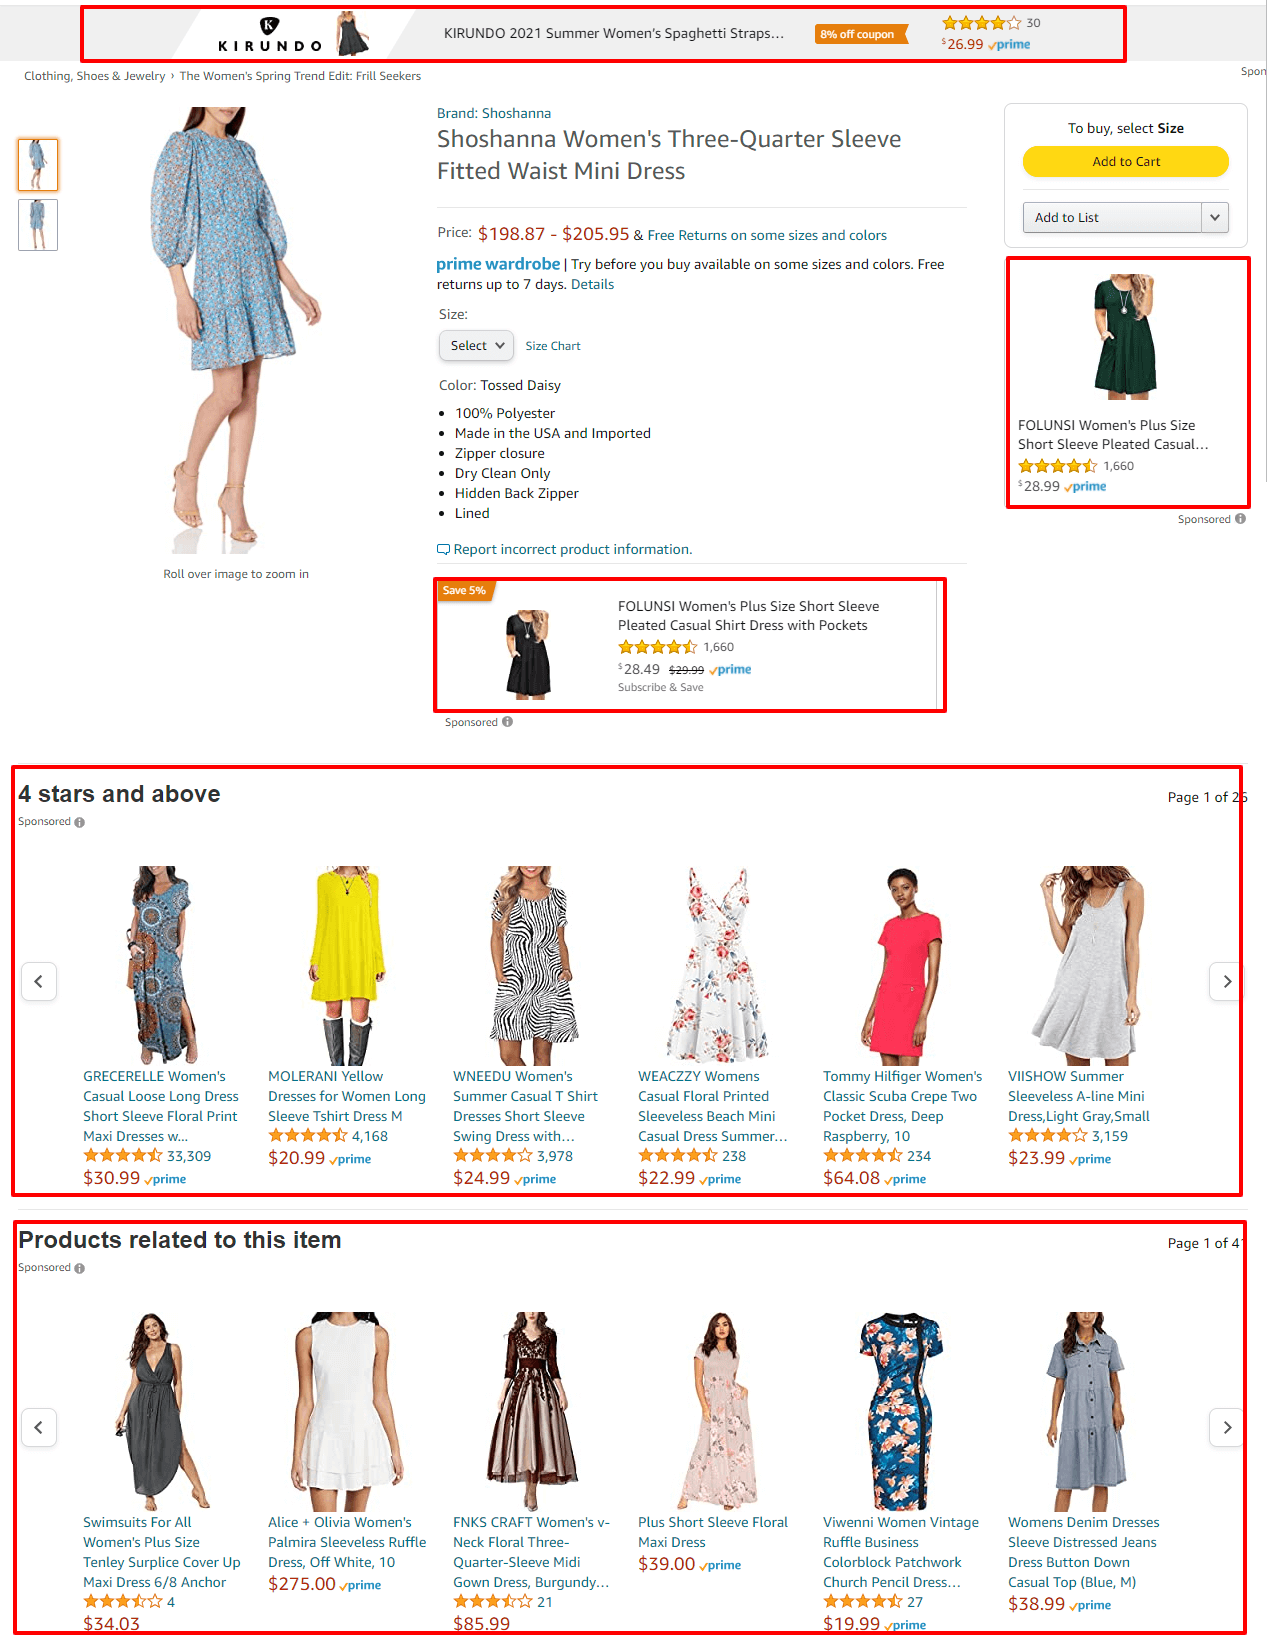 Probably everything you see on detail page an ad